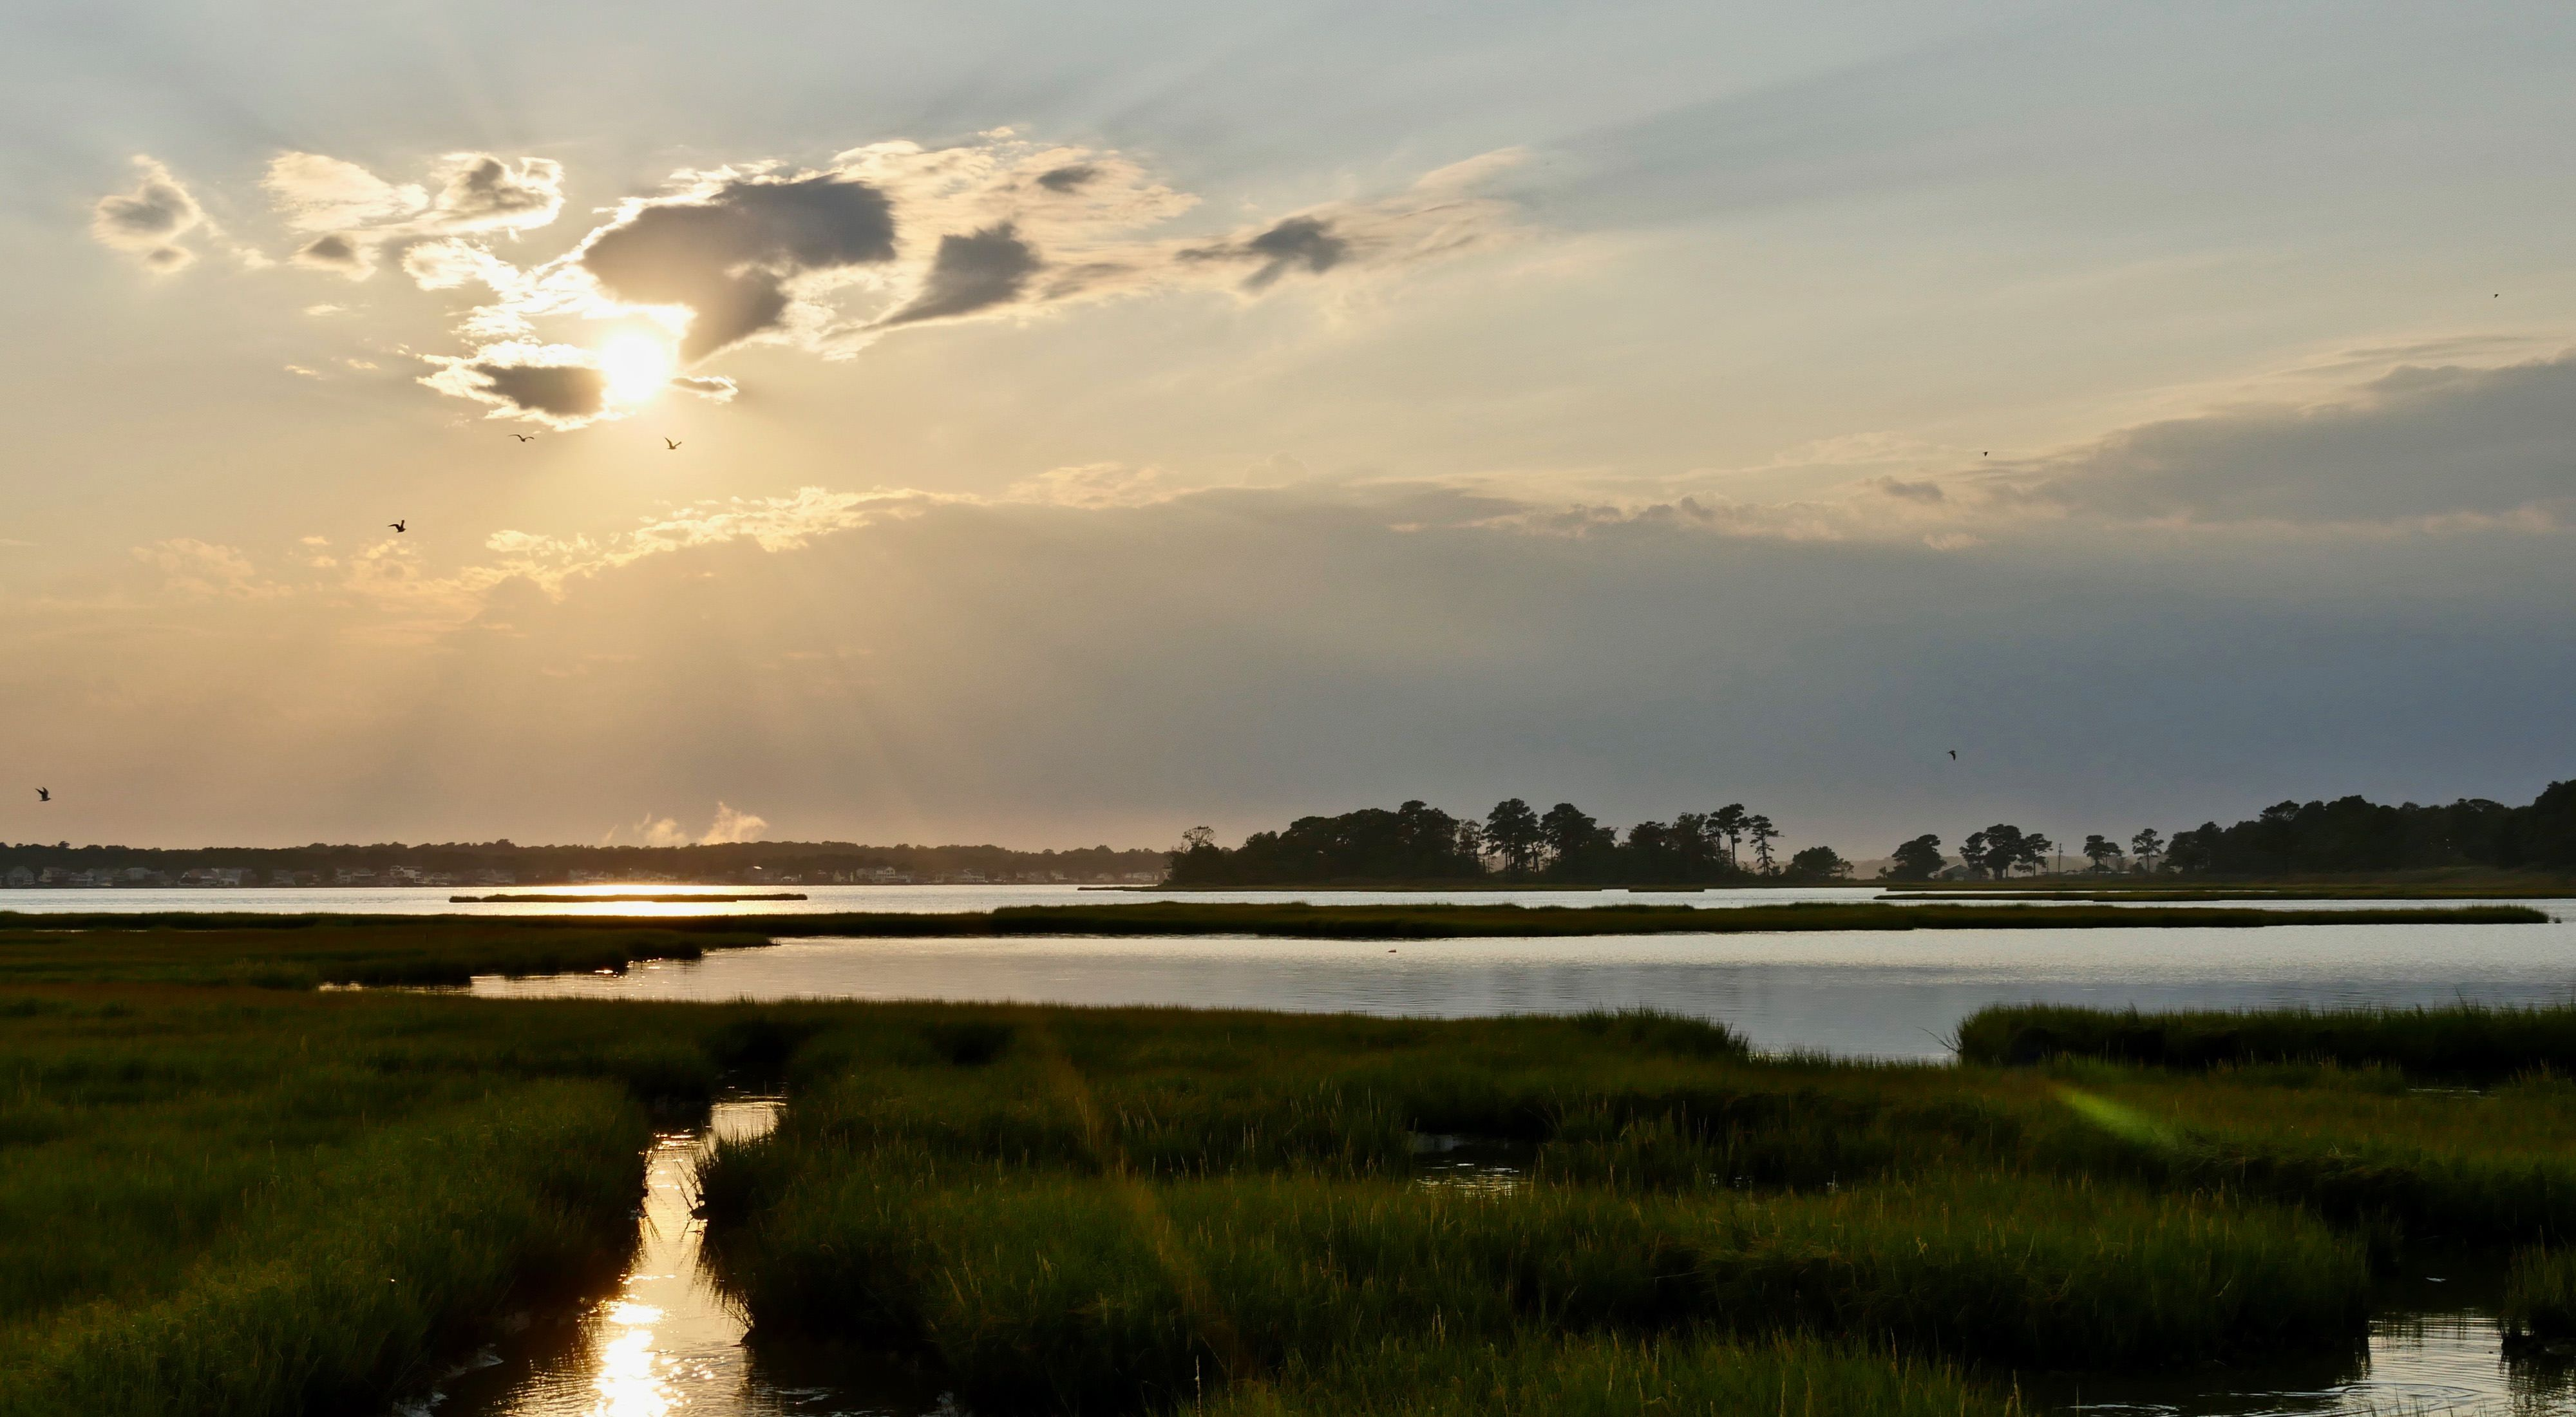 The sun begins to set over wetlands in Maryland just after a passing September thunderstorm.